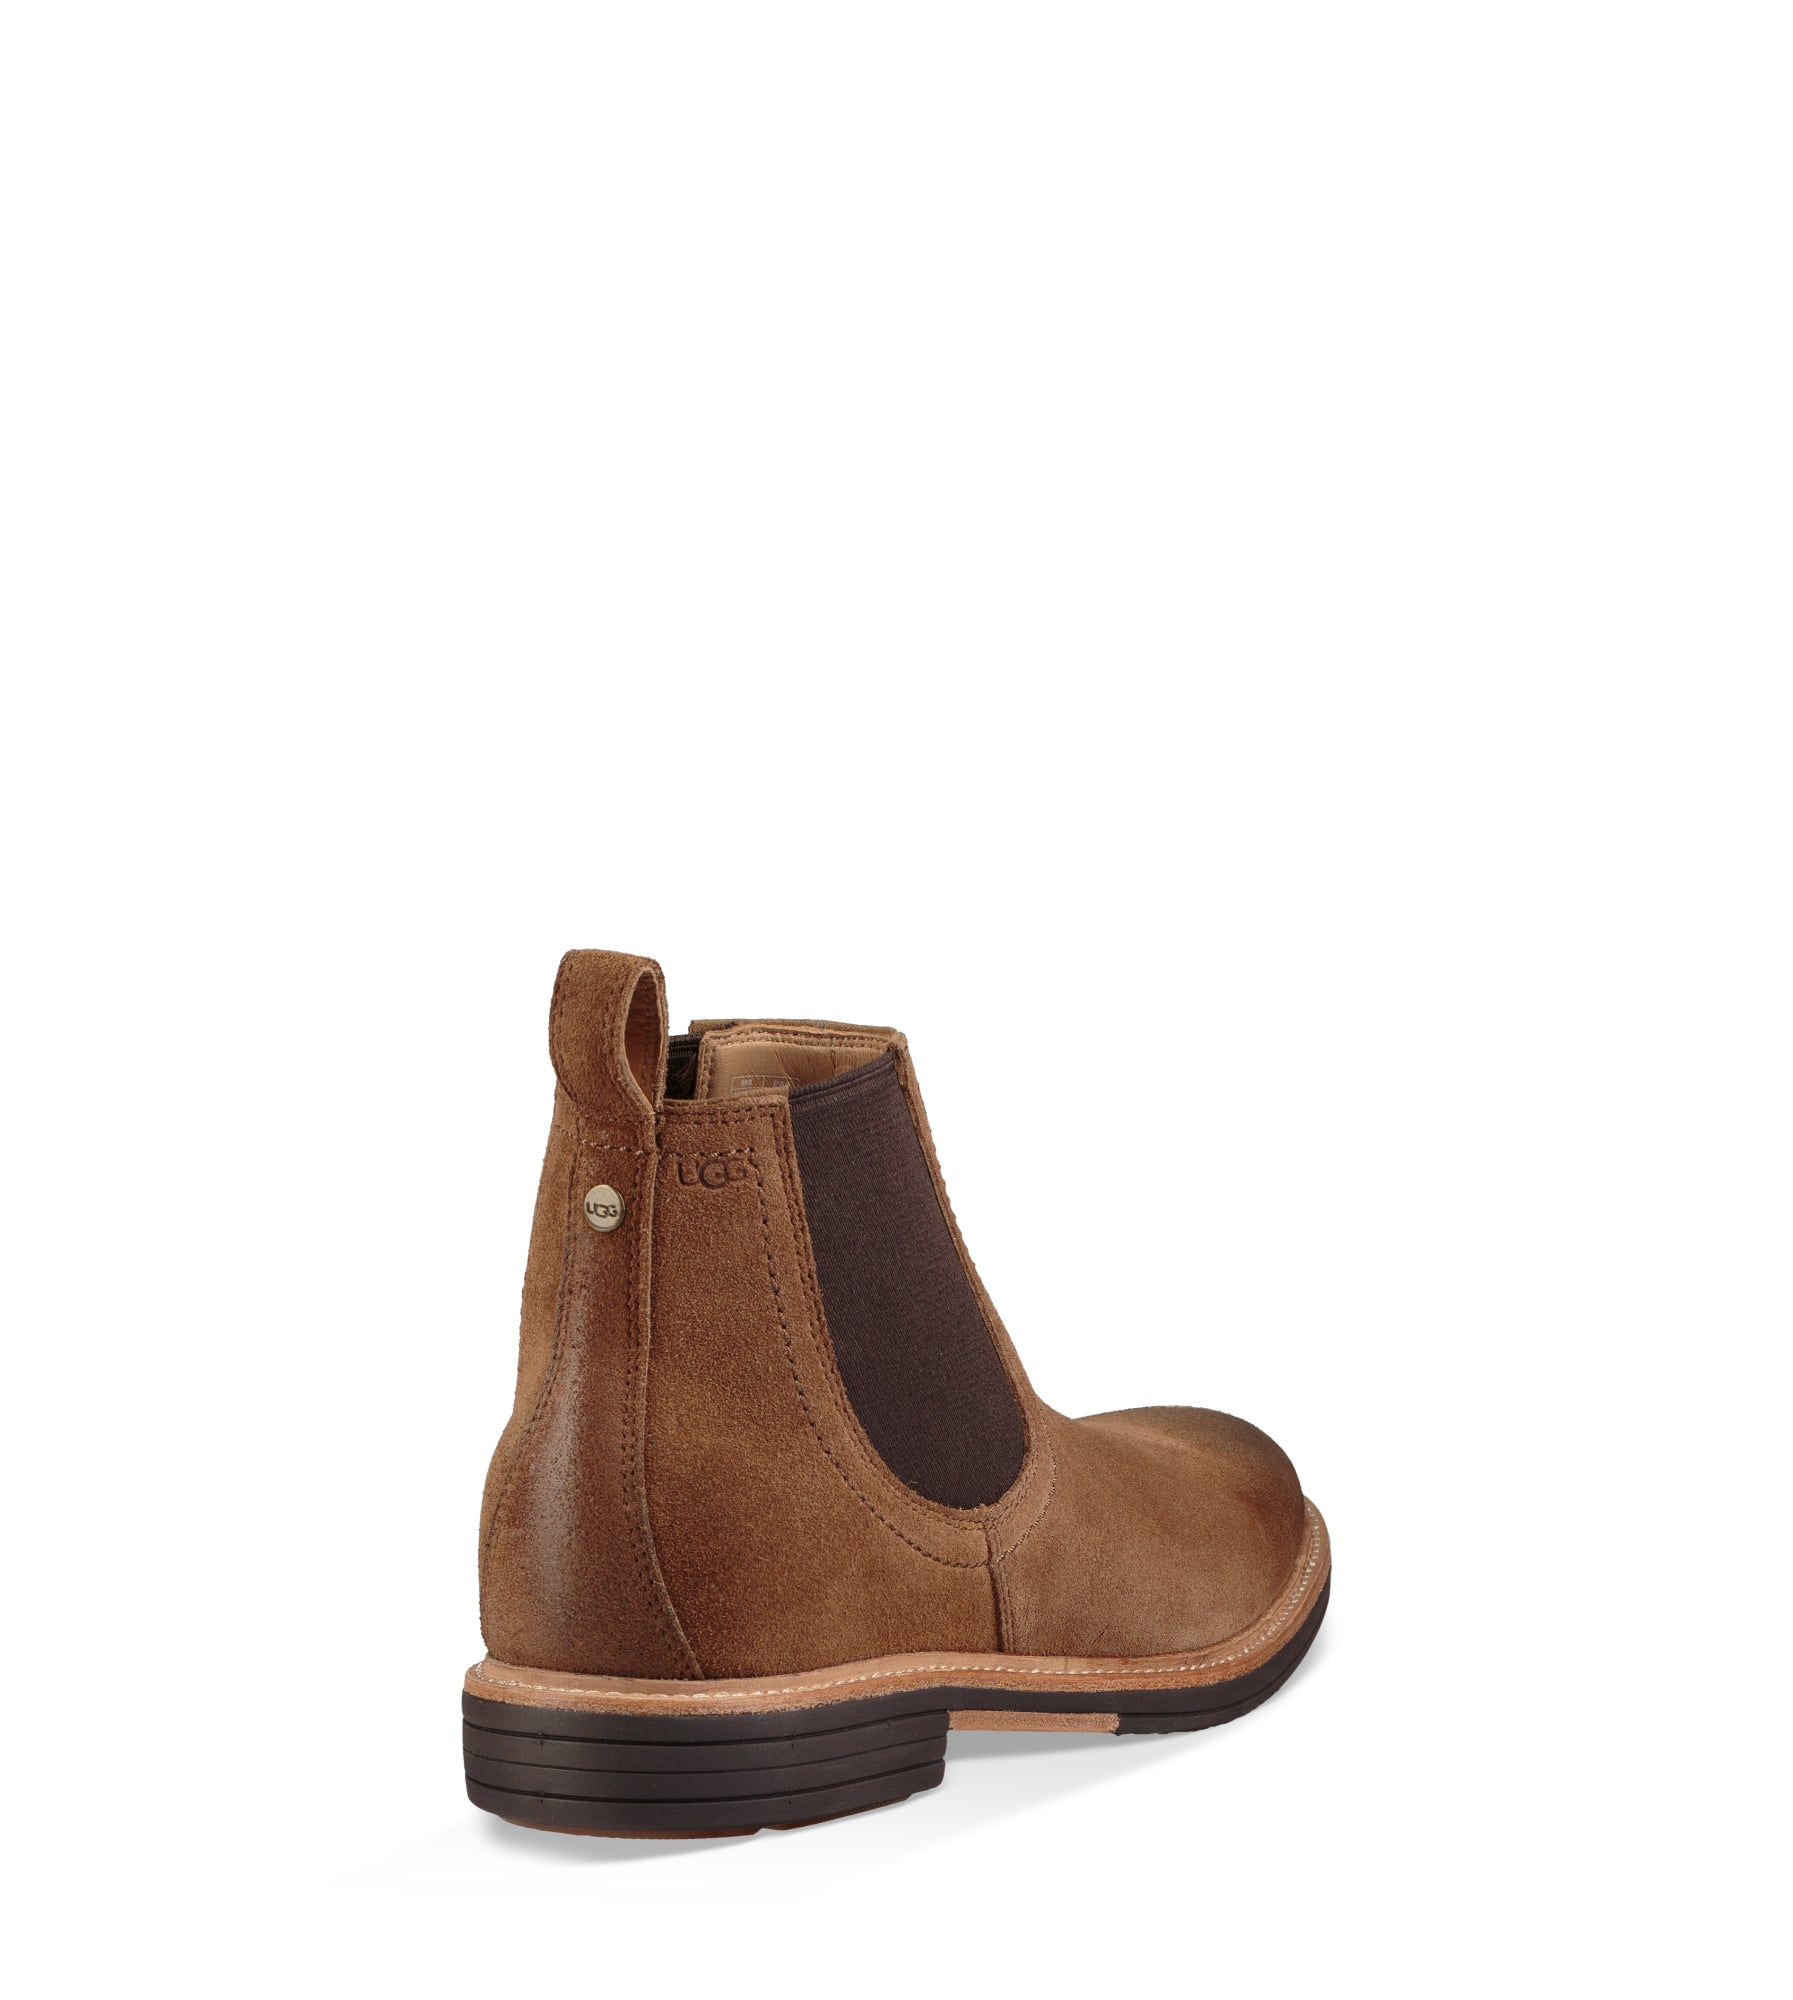 310c355b03d UGG Australia Men's Baldvin Boot in Chestnut – Welcome to ...